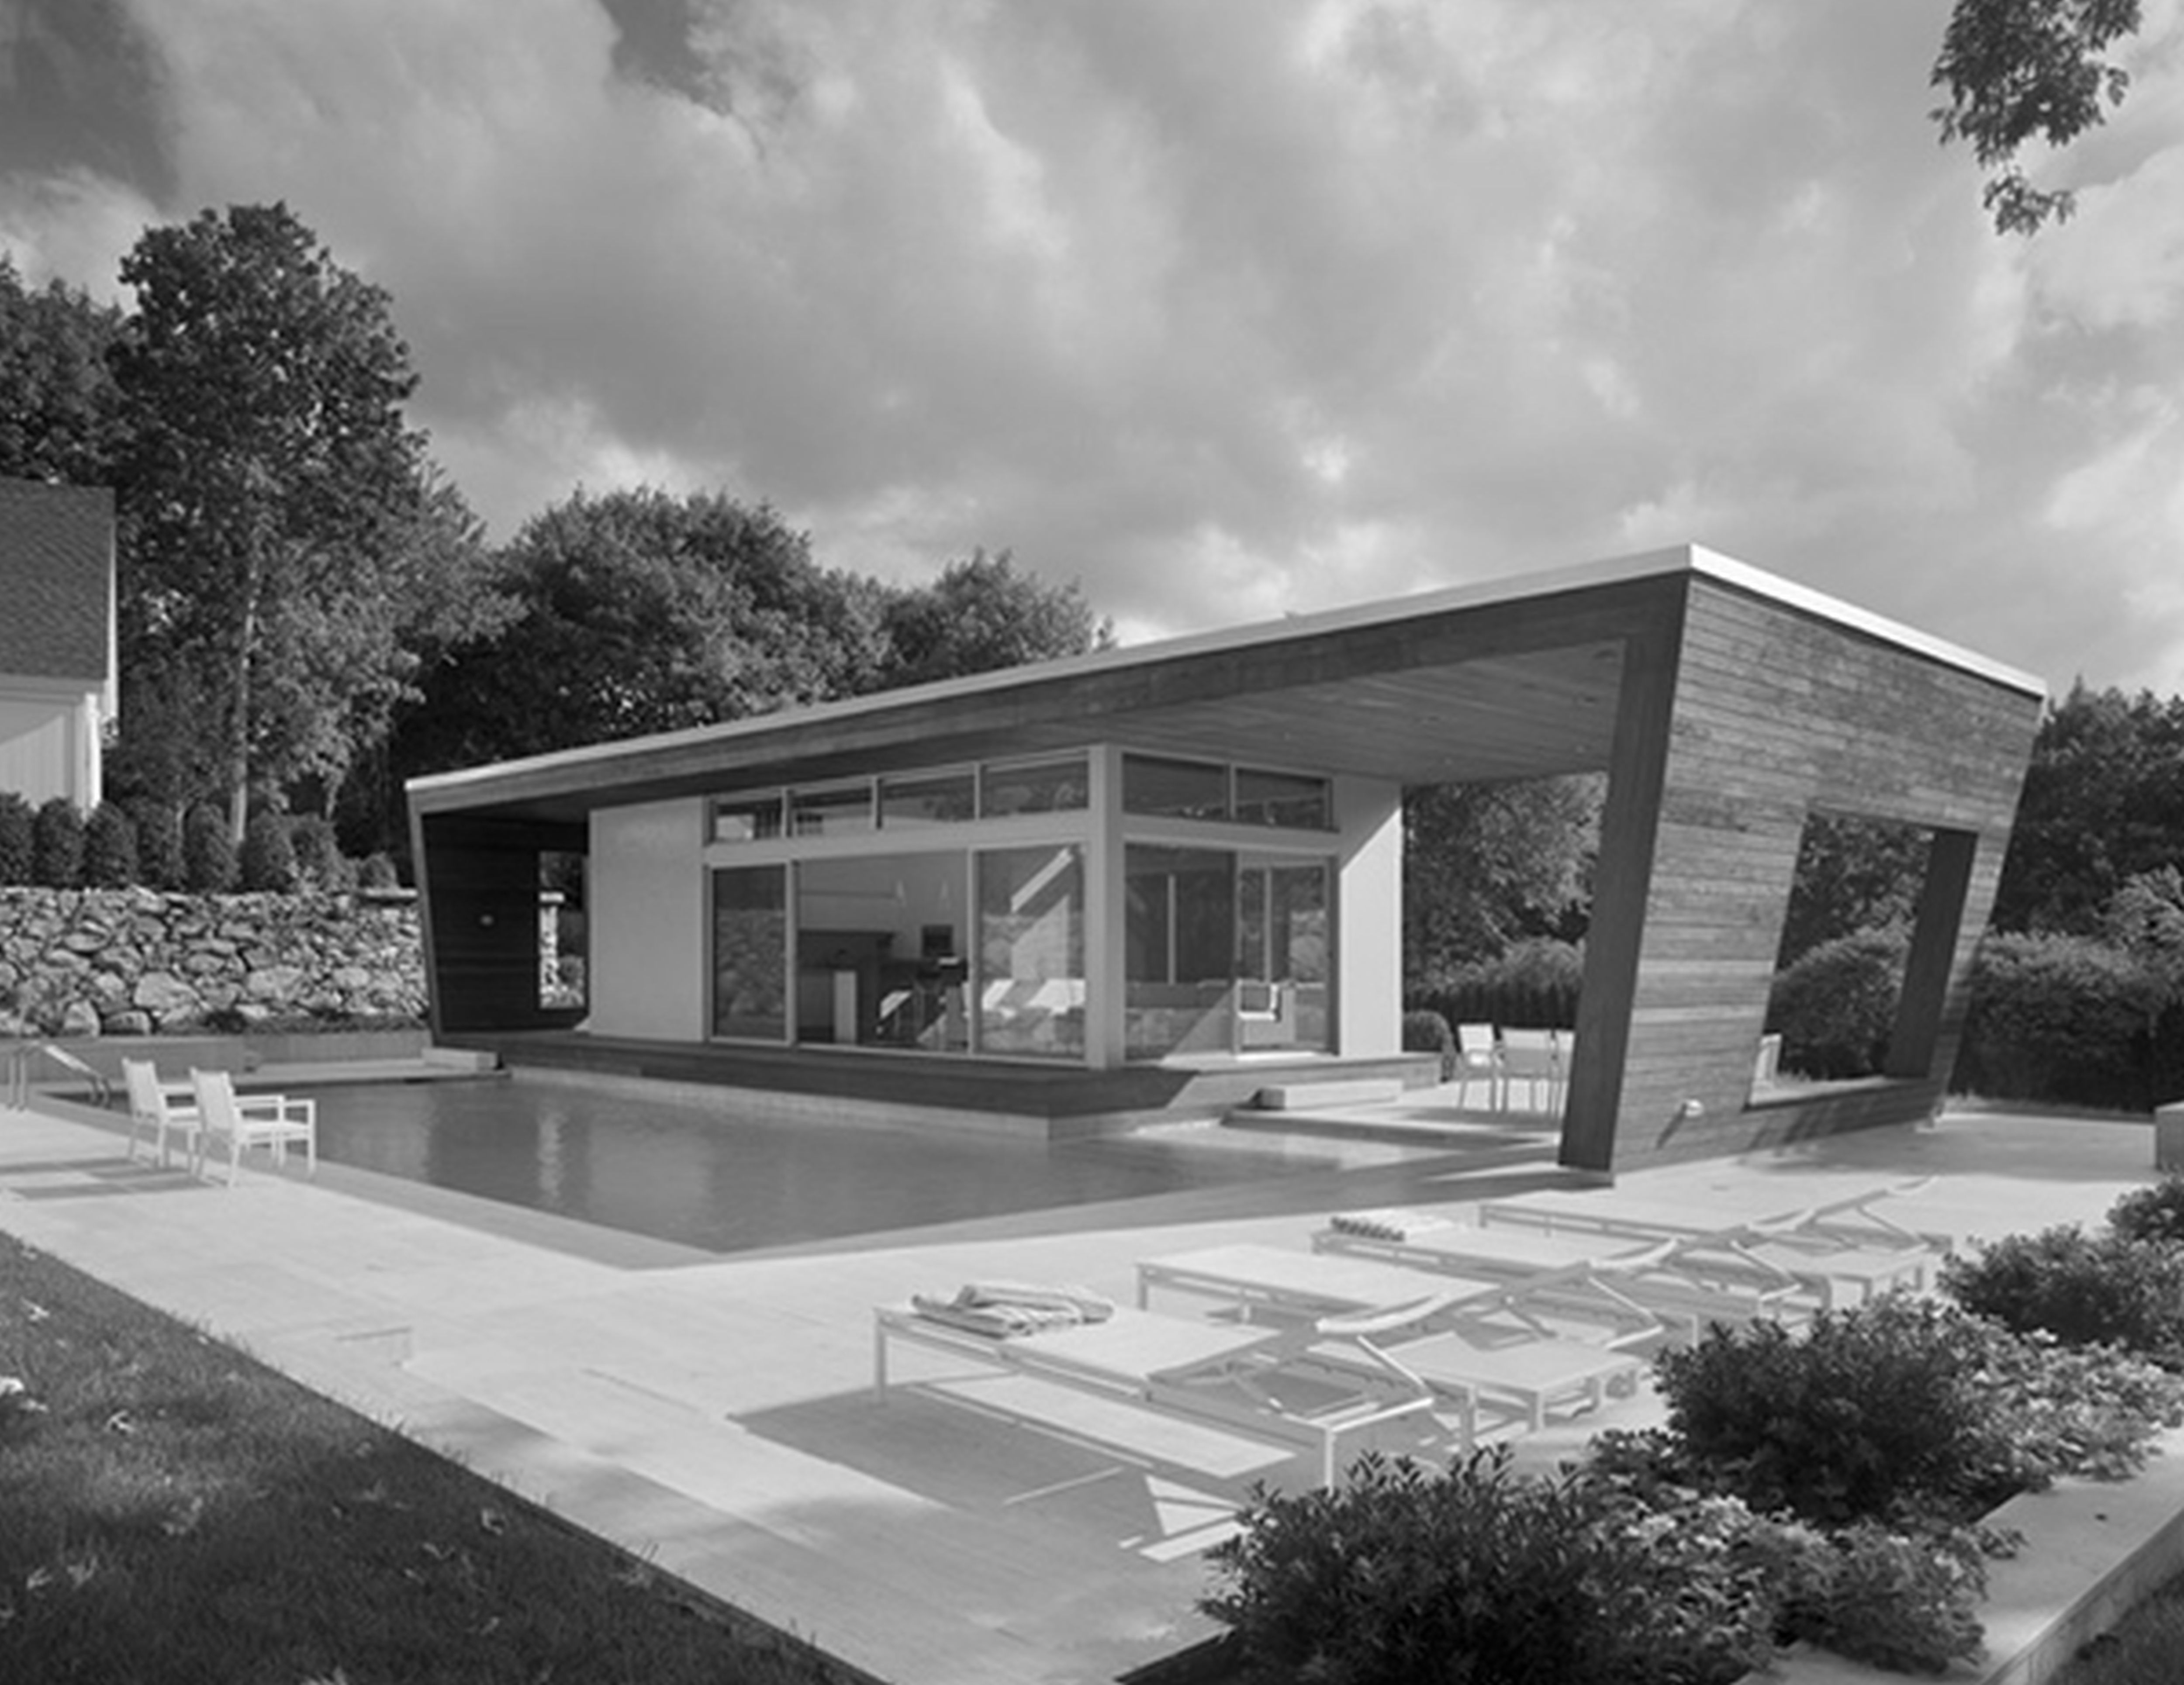 1000 Images About Midcentury Modern On Pinterest House Plans Mid ...